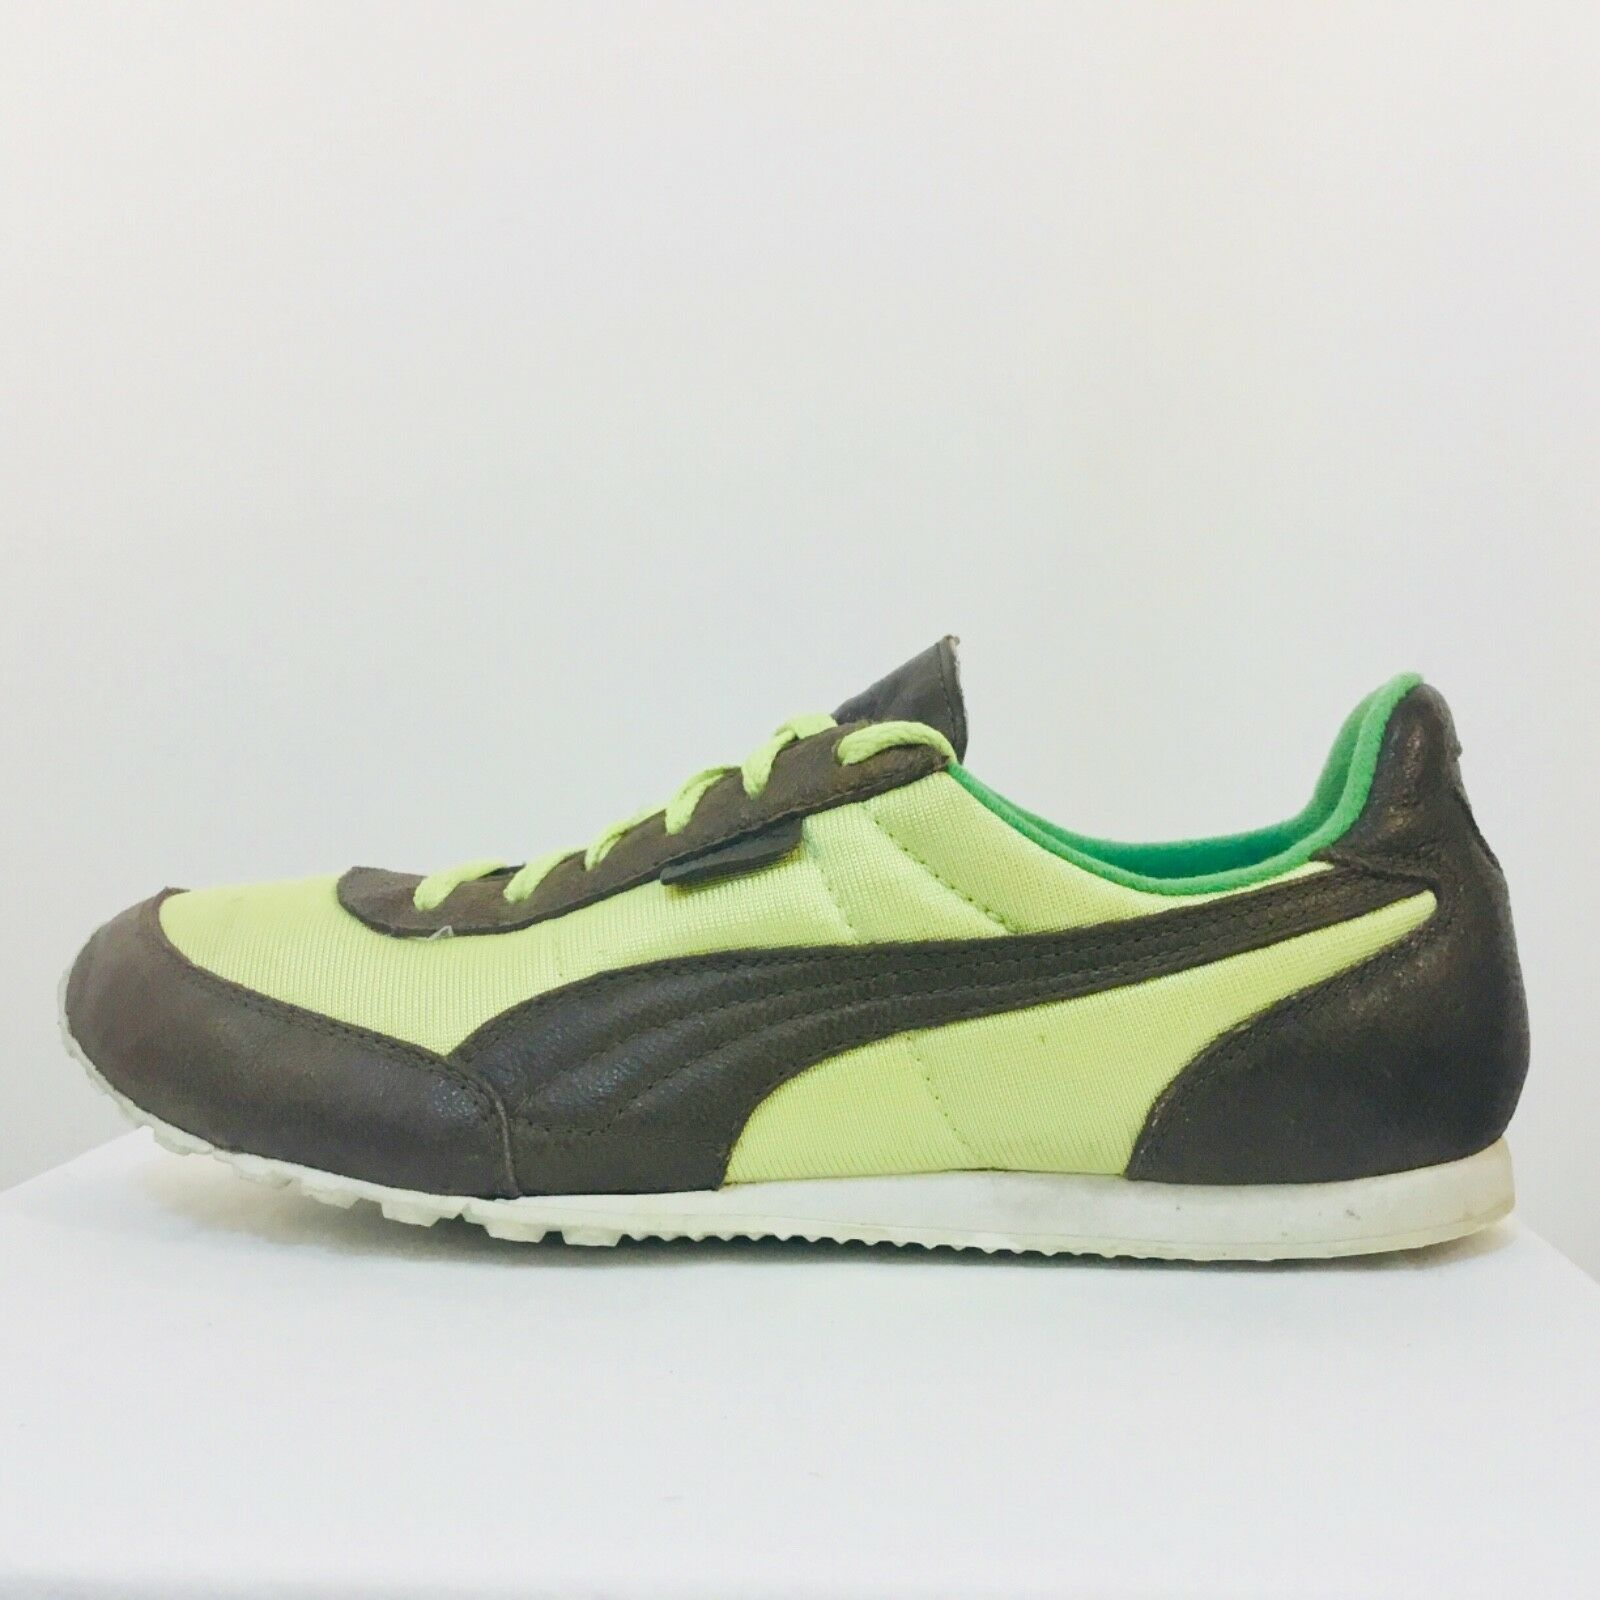 PUMA Brown Leather and Yellow 6.5 Neoprene Running Sneakers, size 6.5 Yellow 97011b